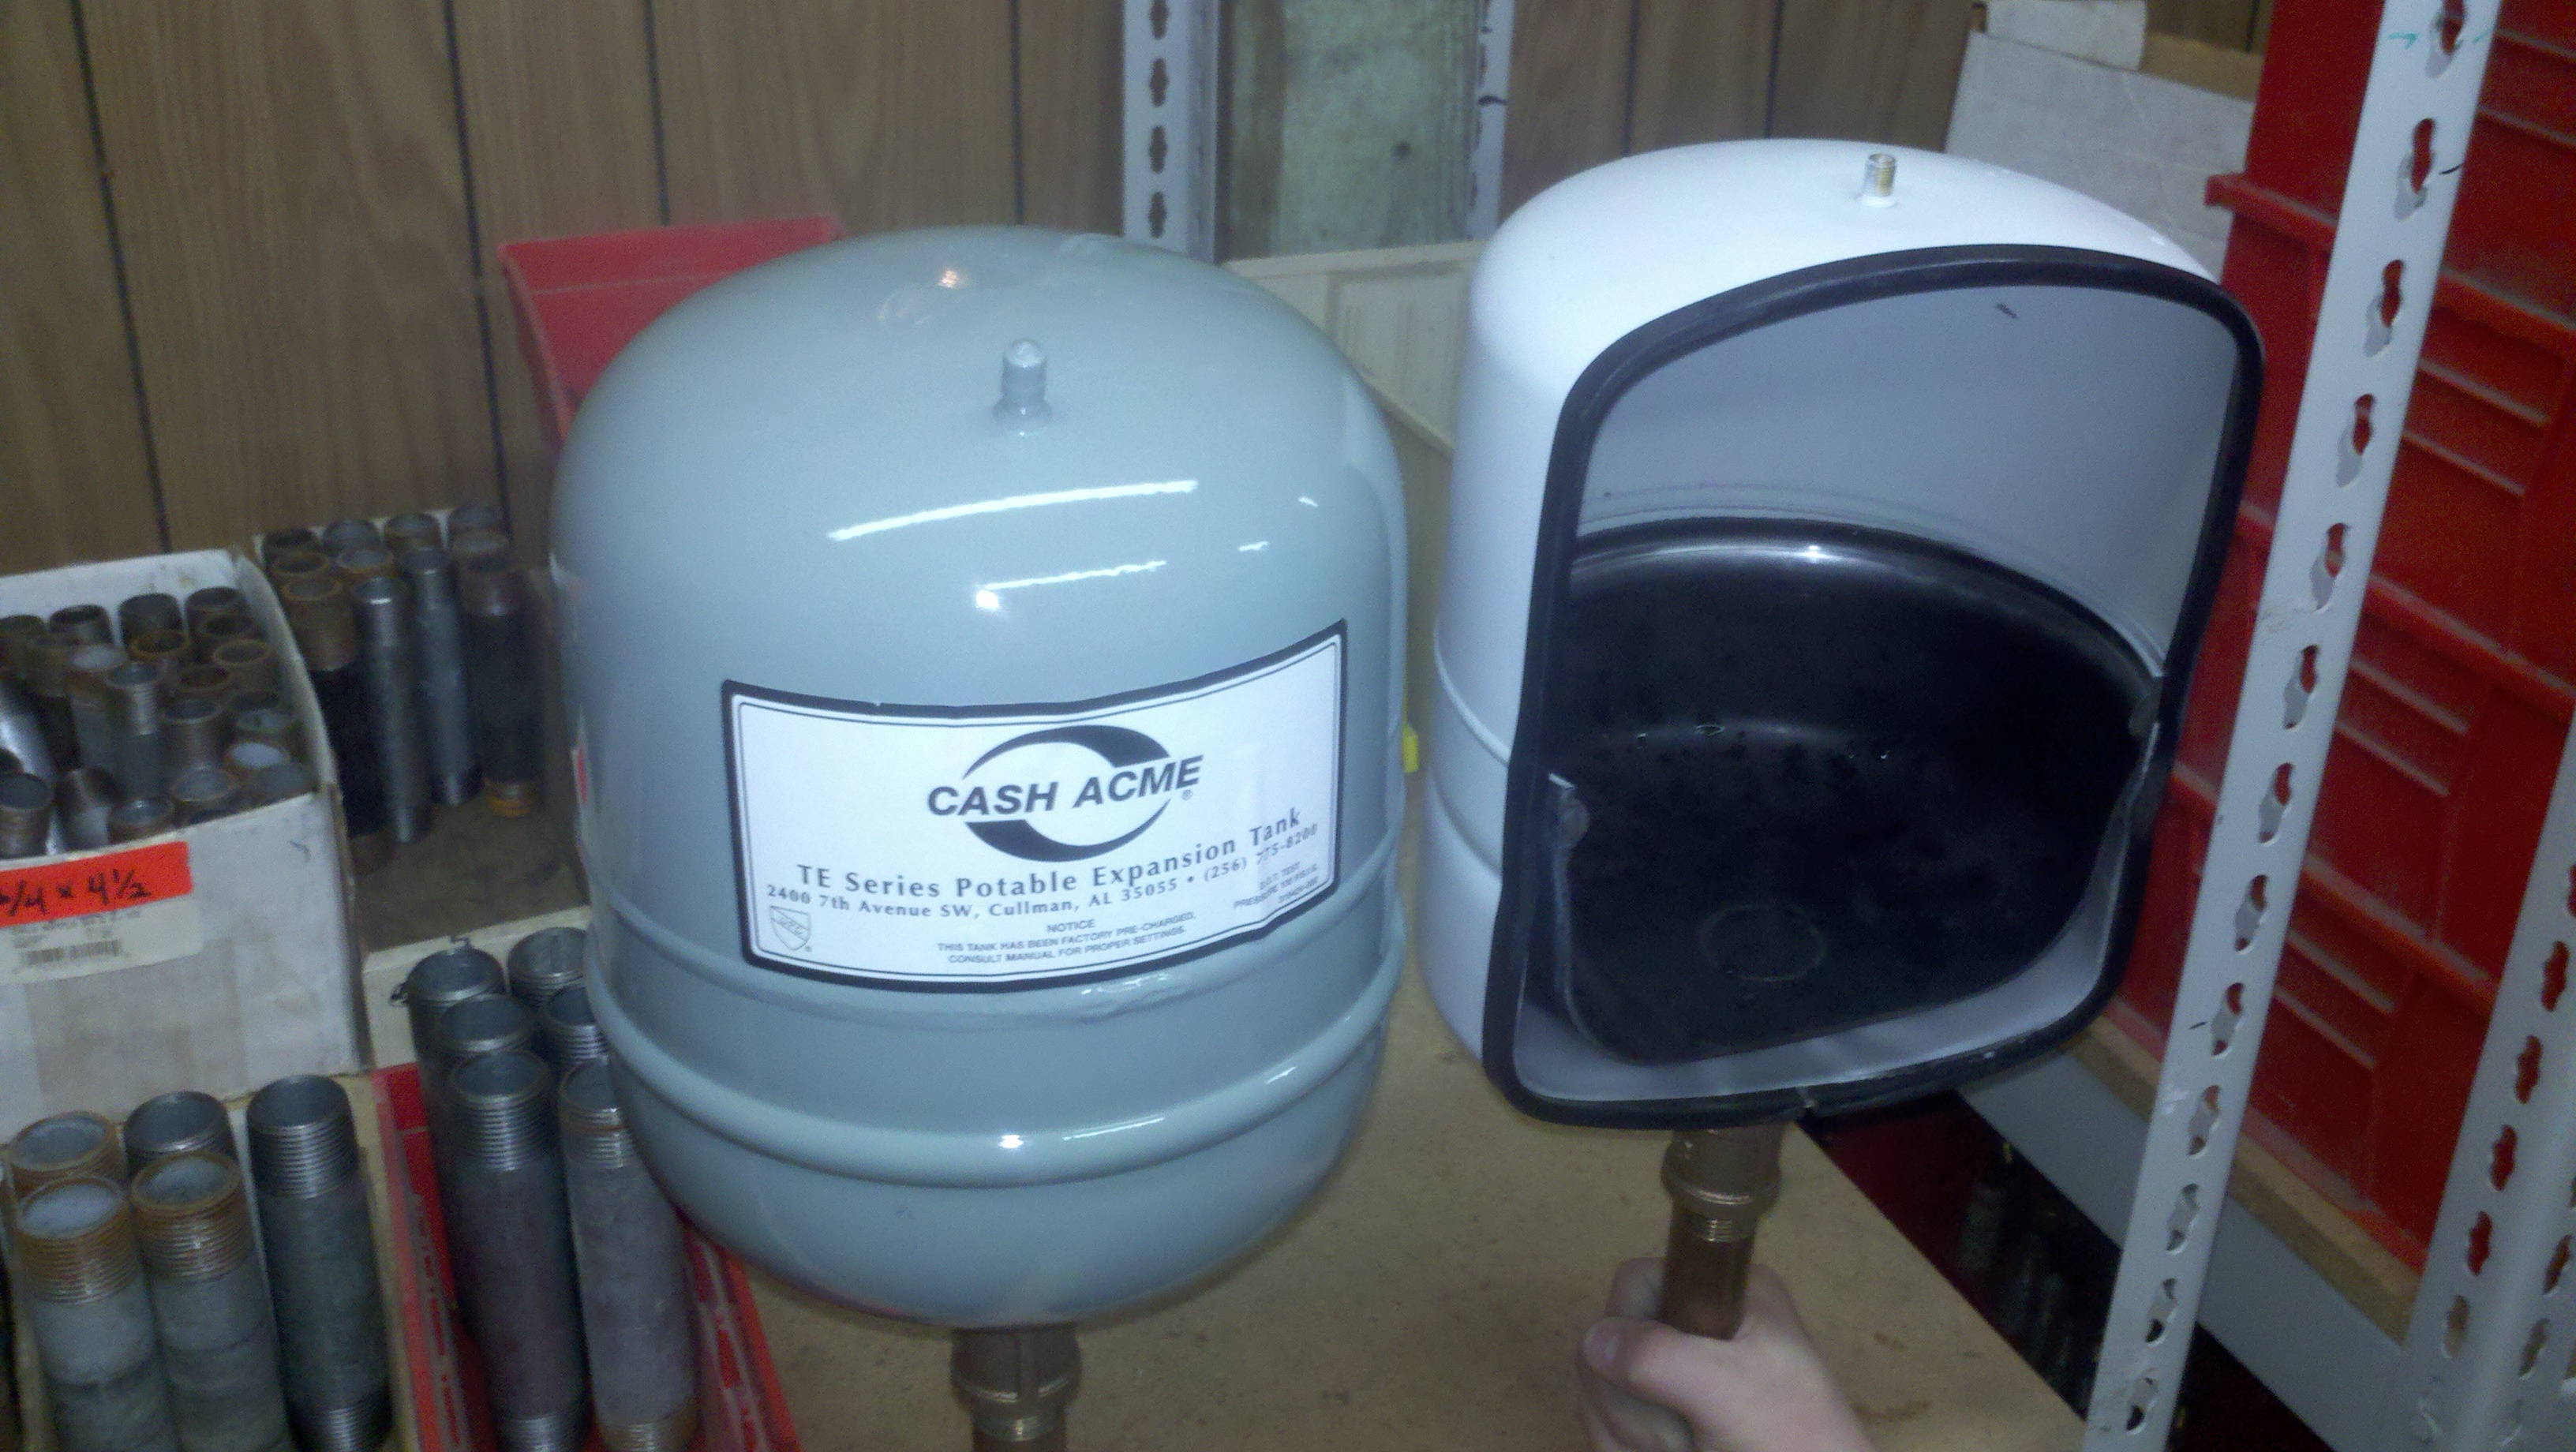 I have an 80 gallon A.O. electric water heater manufactured in 1992 ...